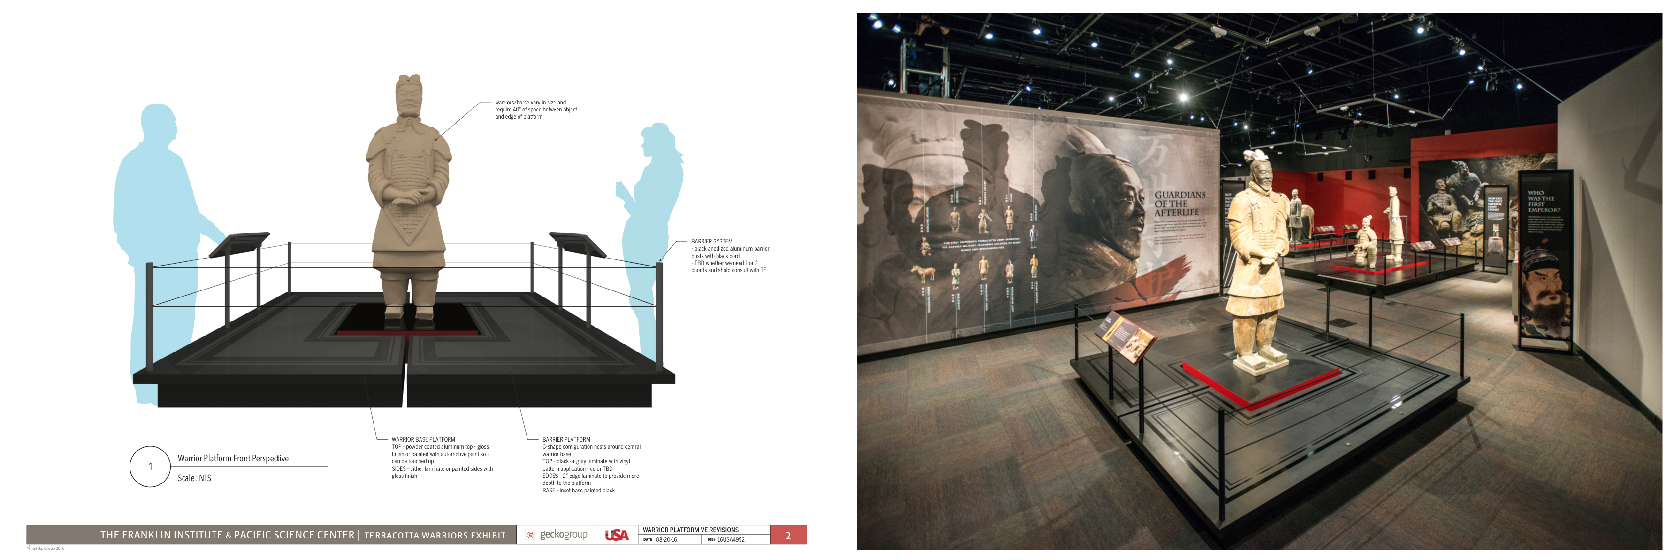 3d rendering of a climate controlled exhibit platform for Terracotta Warriors